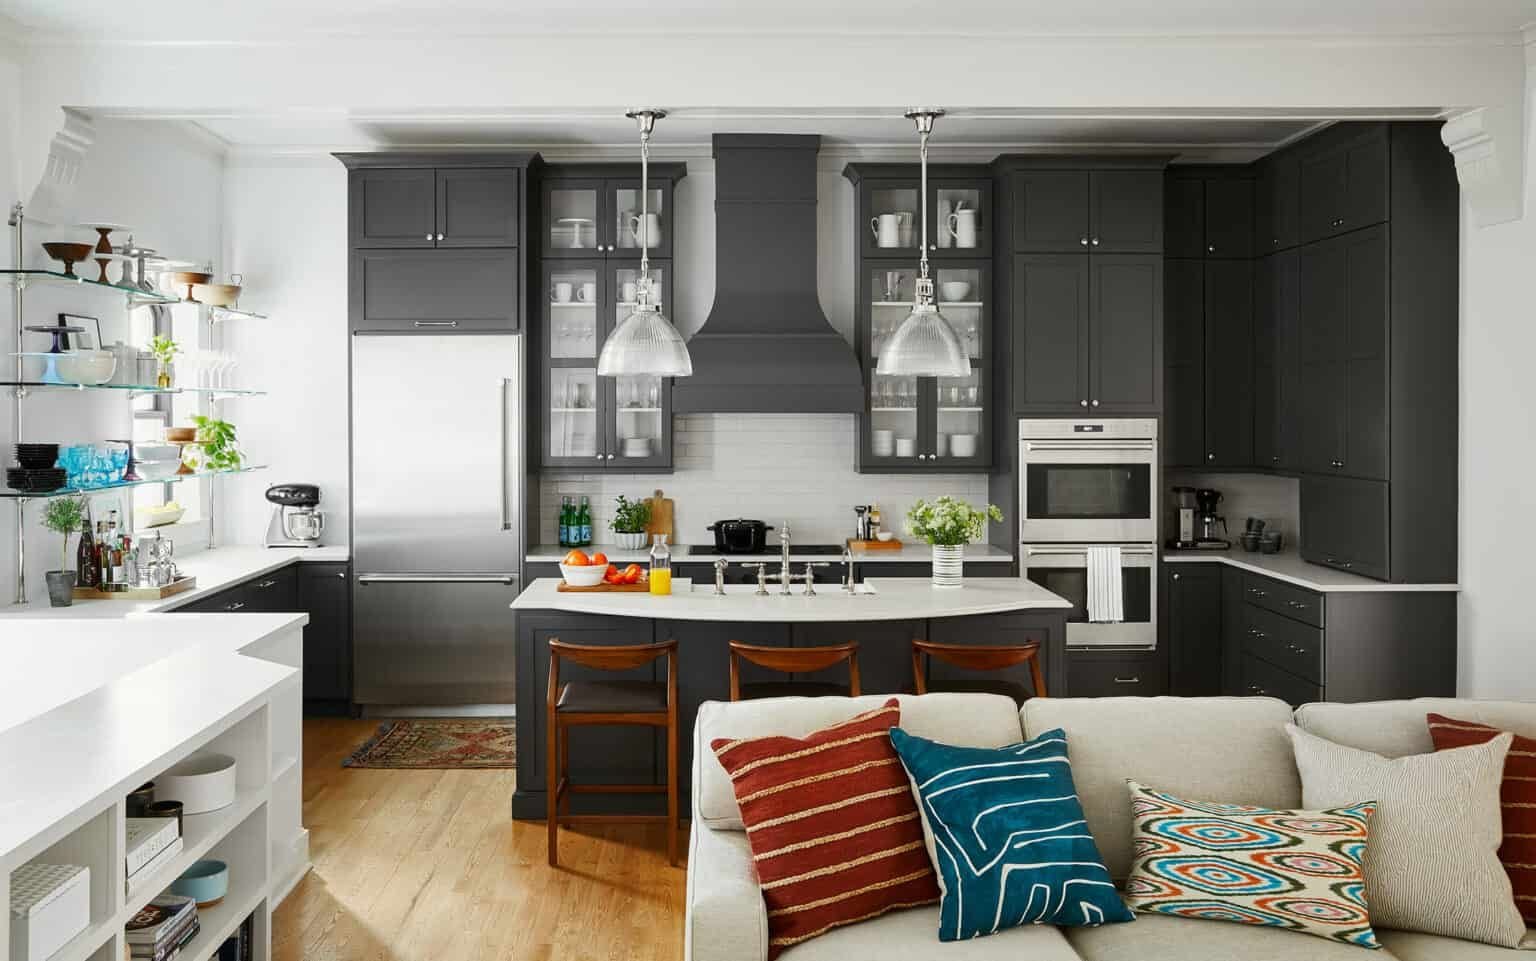 Dark Gray Kitchen Cabinets Trending for 2020 - Centered by Design